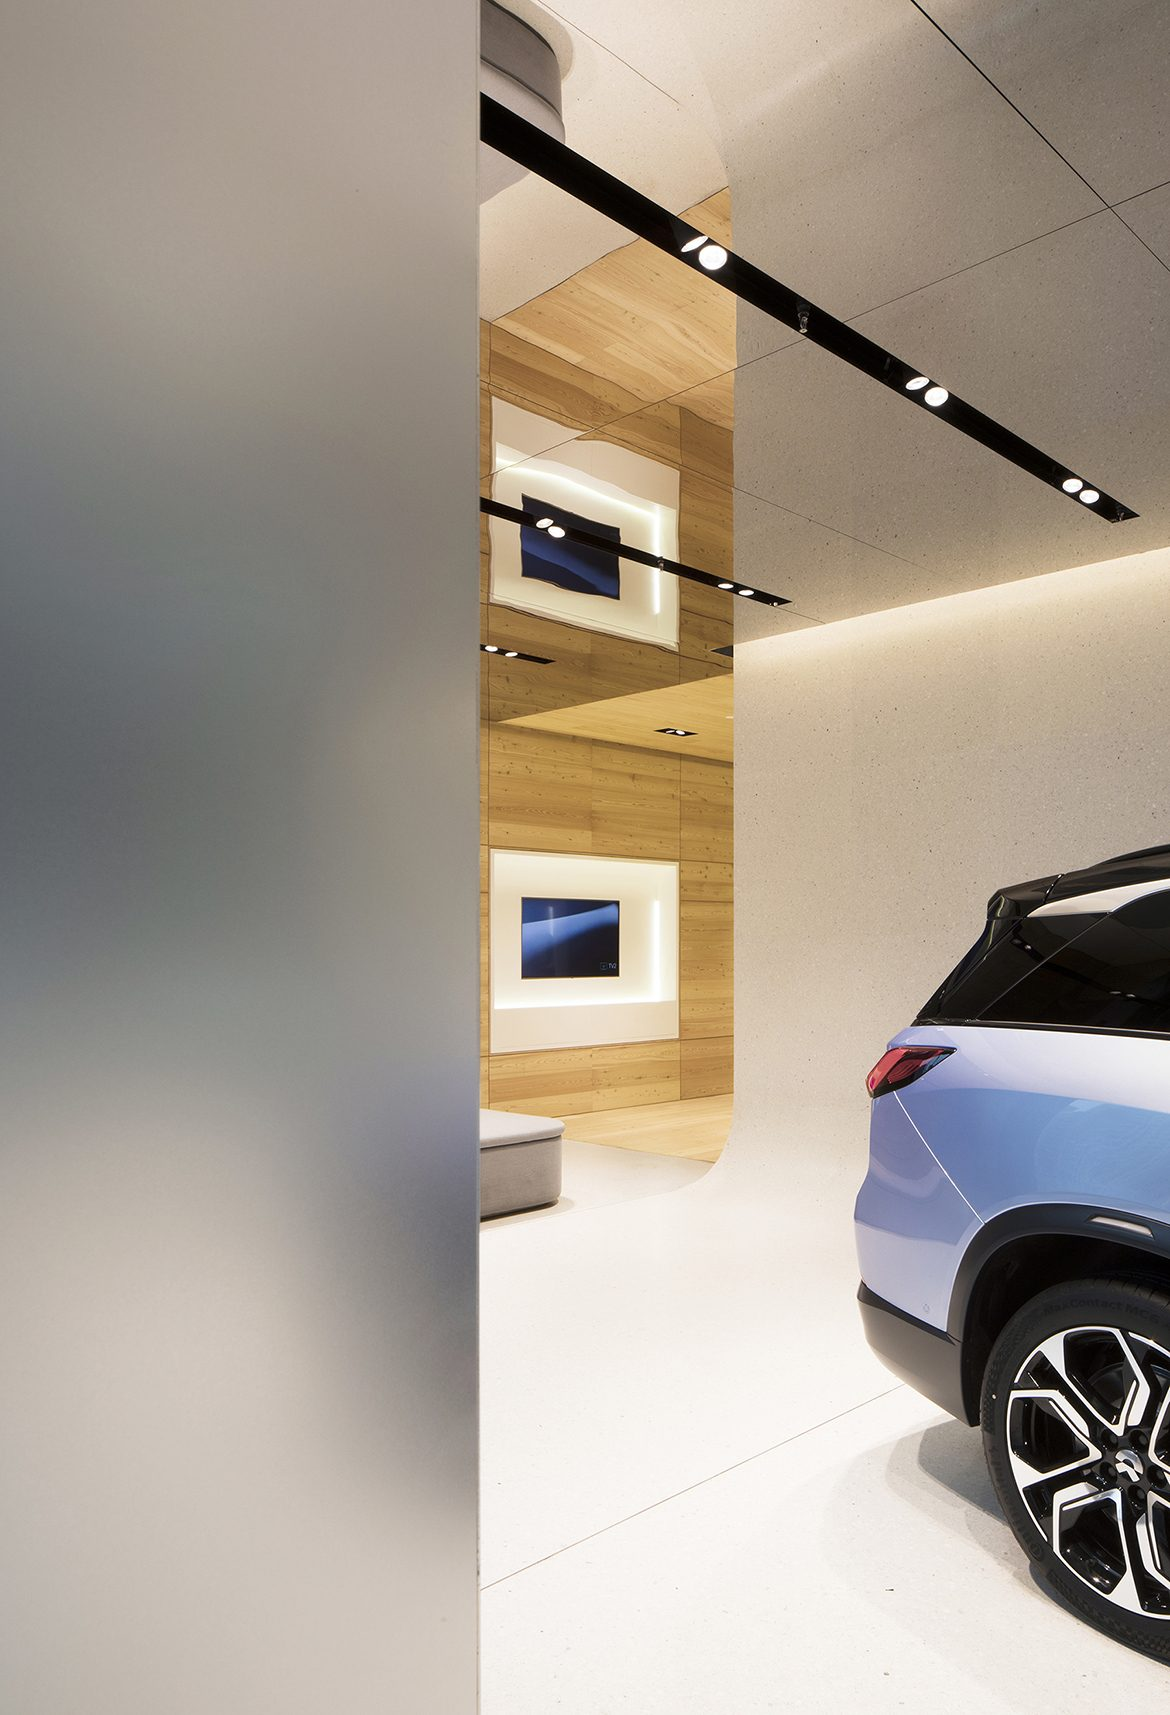 raams-architecture-design-studio-german-roig-garcia-architect-electric-car-shanghai-nio-house-SHL_NIO-Showroom_@RawVision_10-1170x1715.jpg